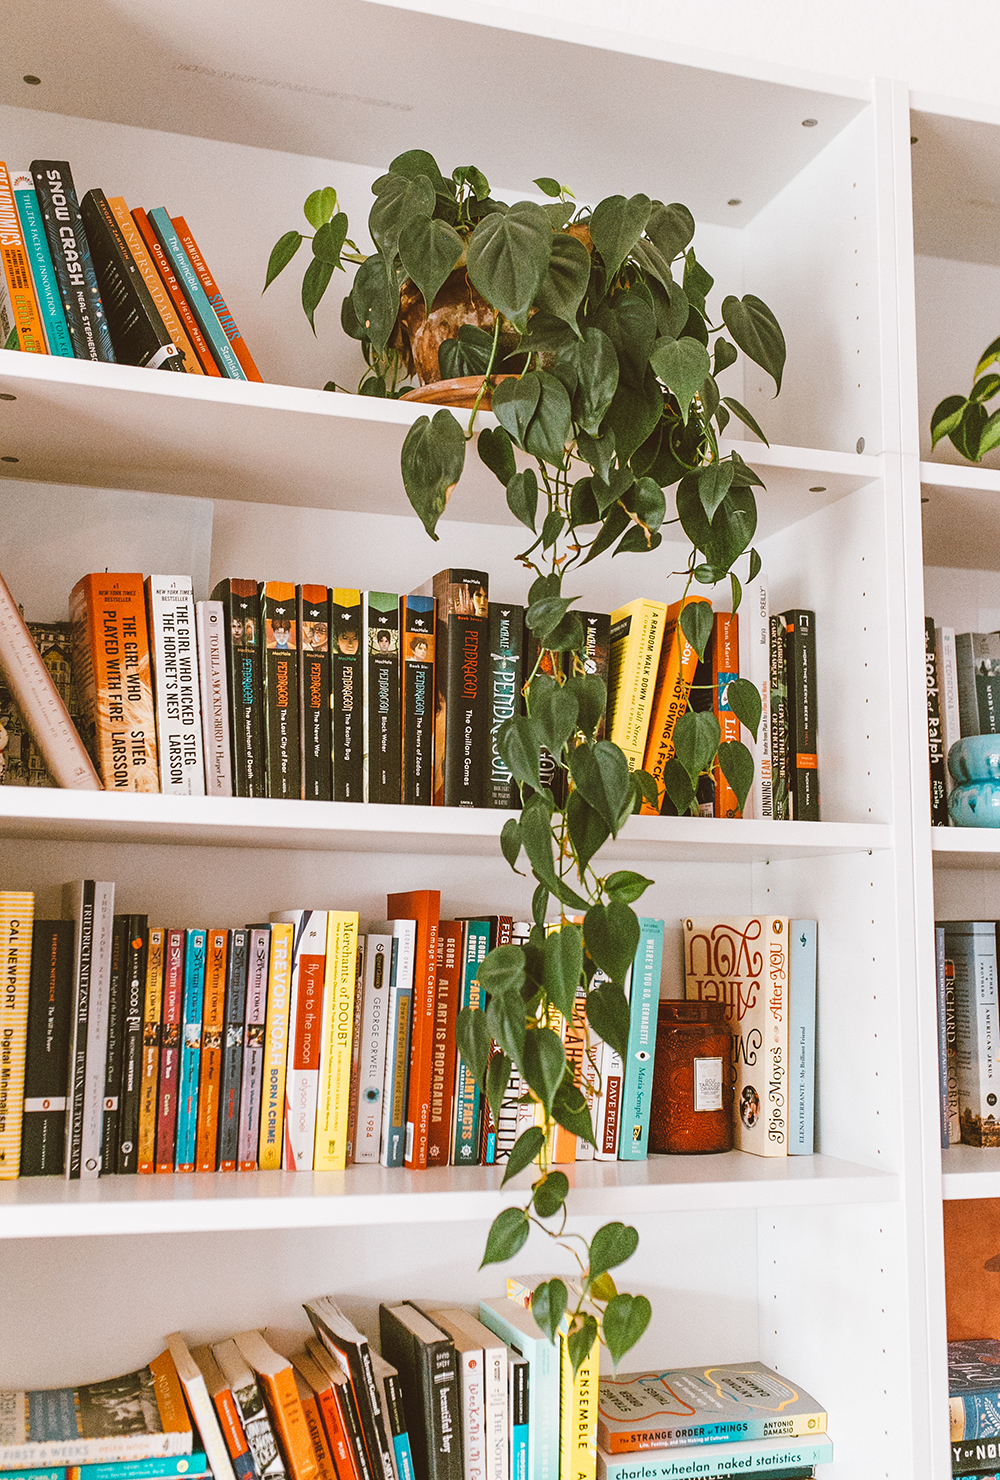 livvyland-blog-olivia-watson-austin-texas-lifestyle-blogger-home-decor-inside-plant-care-how-to-bookshelf-2